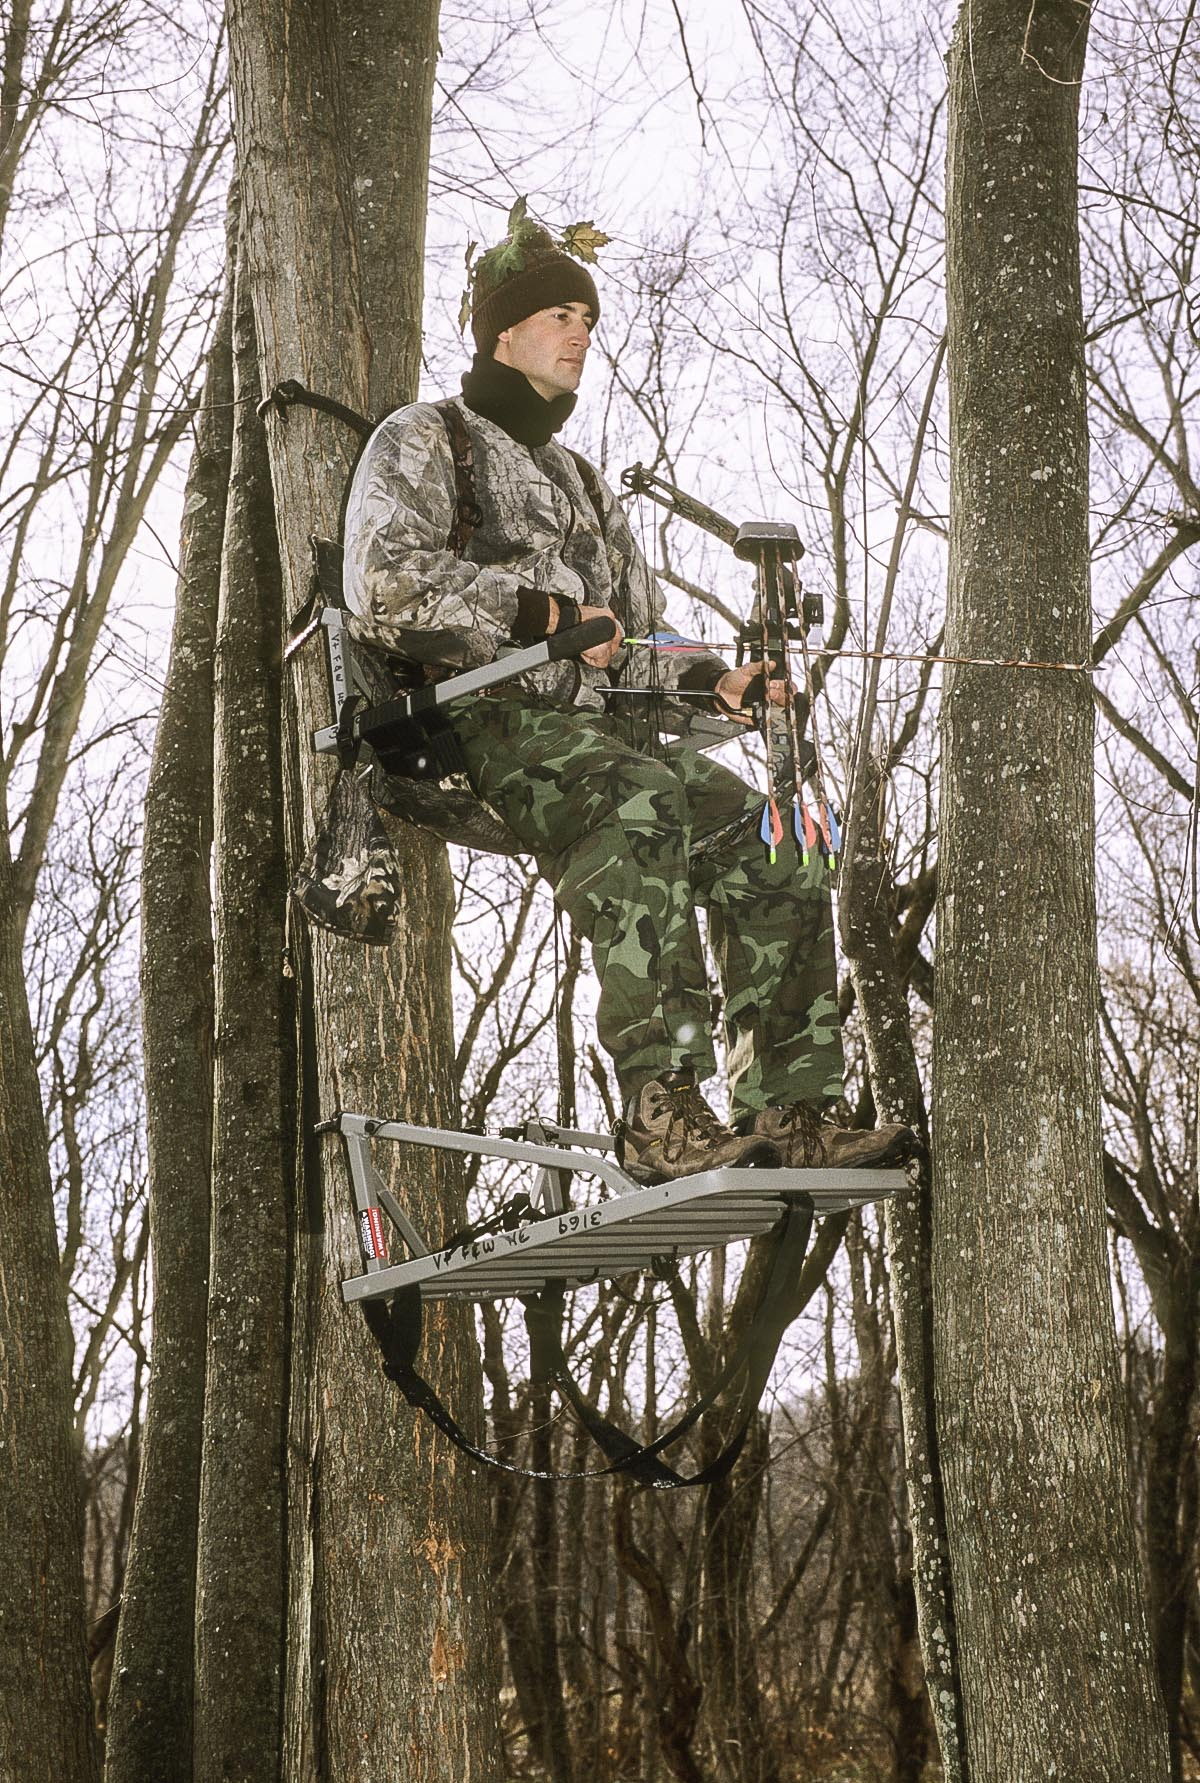 Vermont Offers Tree Stand Safety Tips For Hunters Outdoorhub